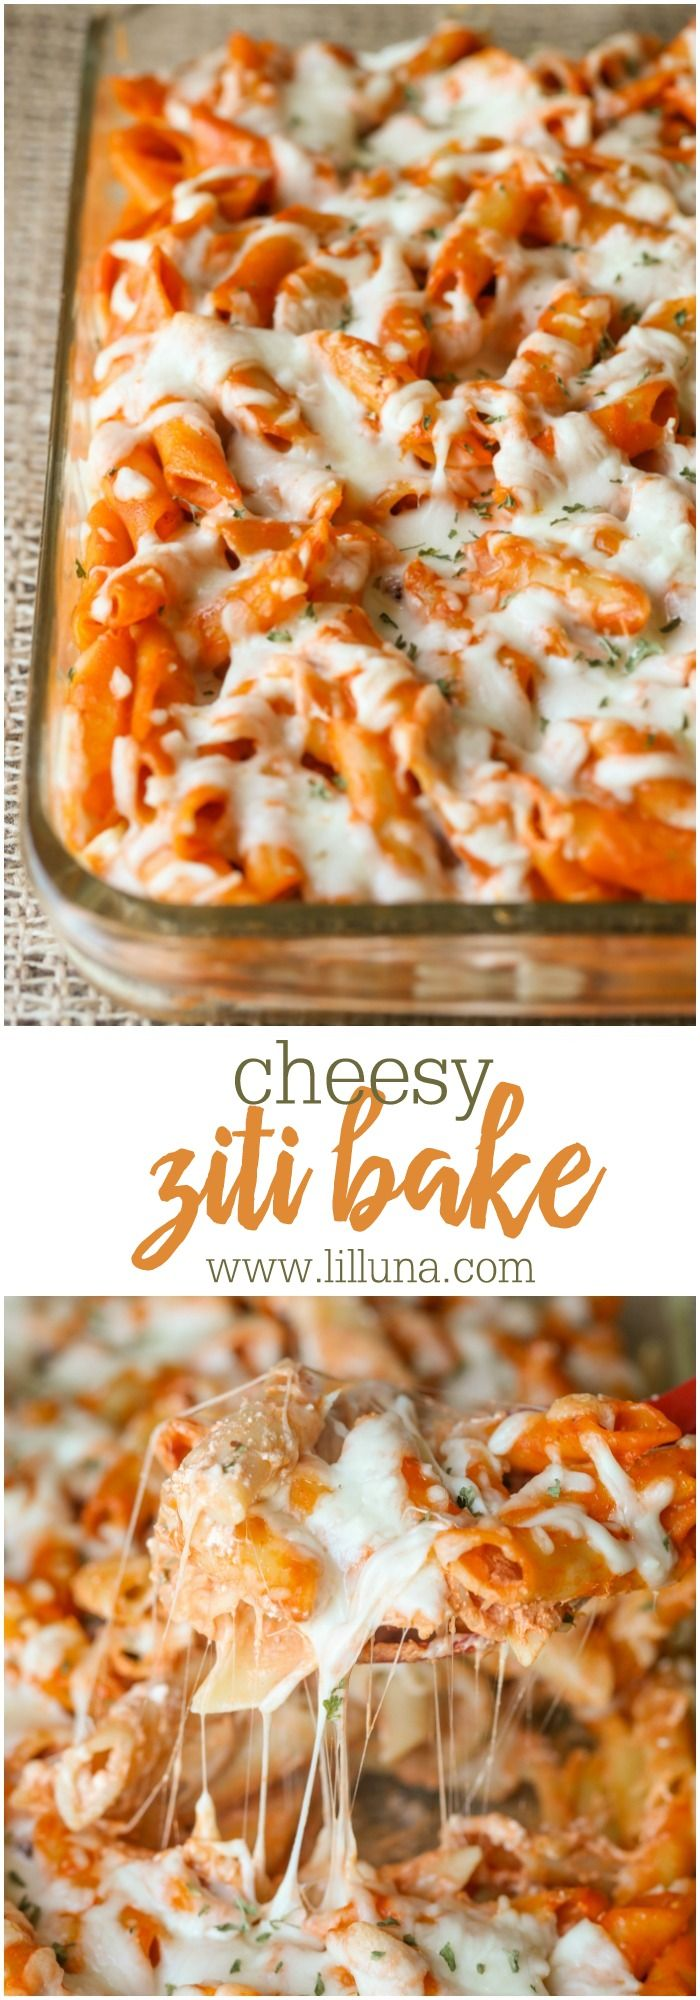 Cheesy Ziti Bake - a simple and delicious dinner recipe filled with a cream cheese and tomato sauce topped with cheese! YUM!